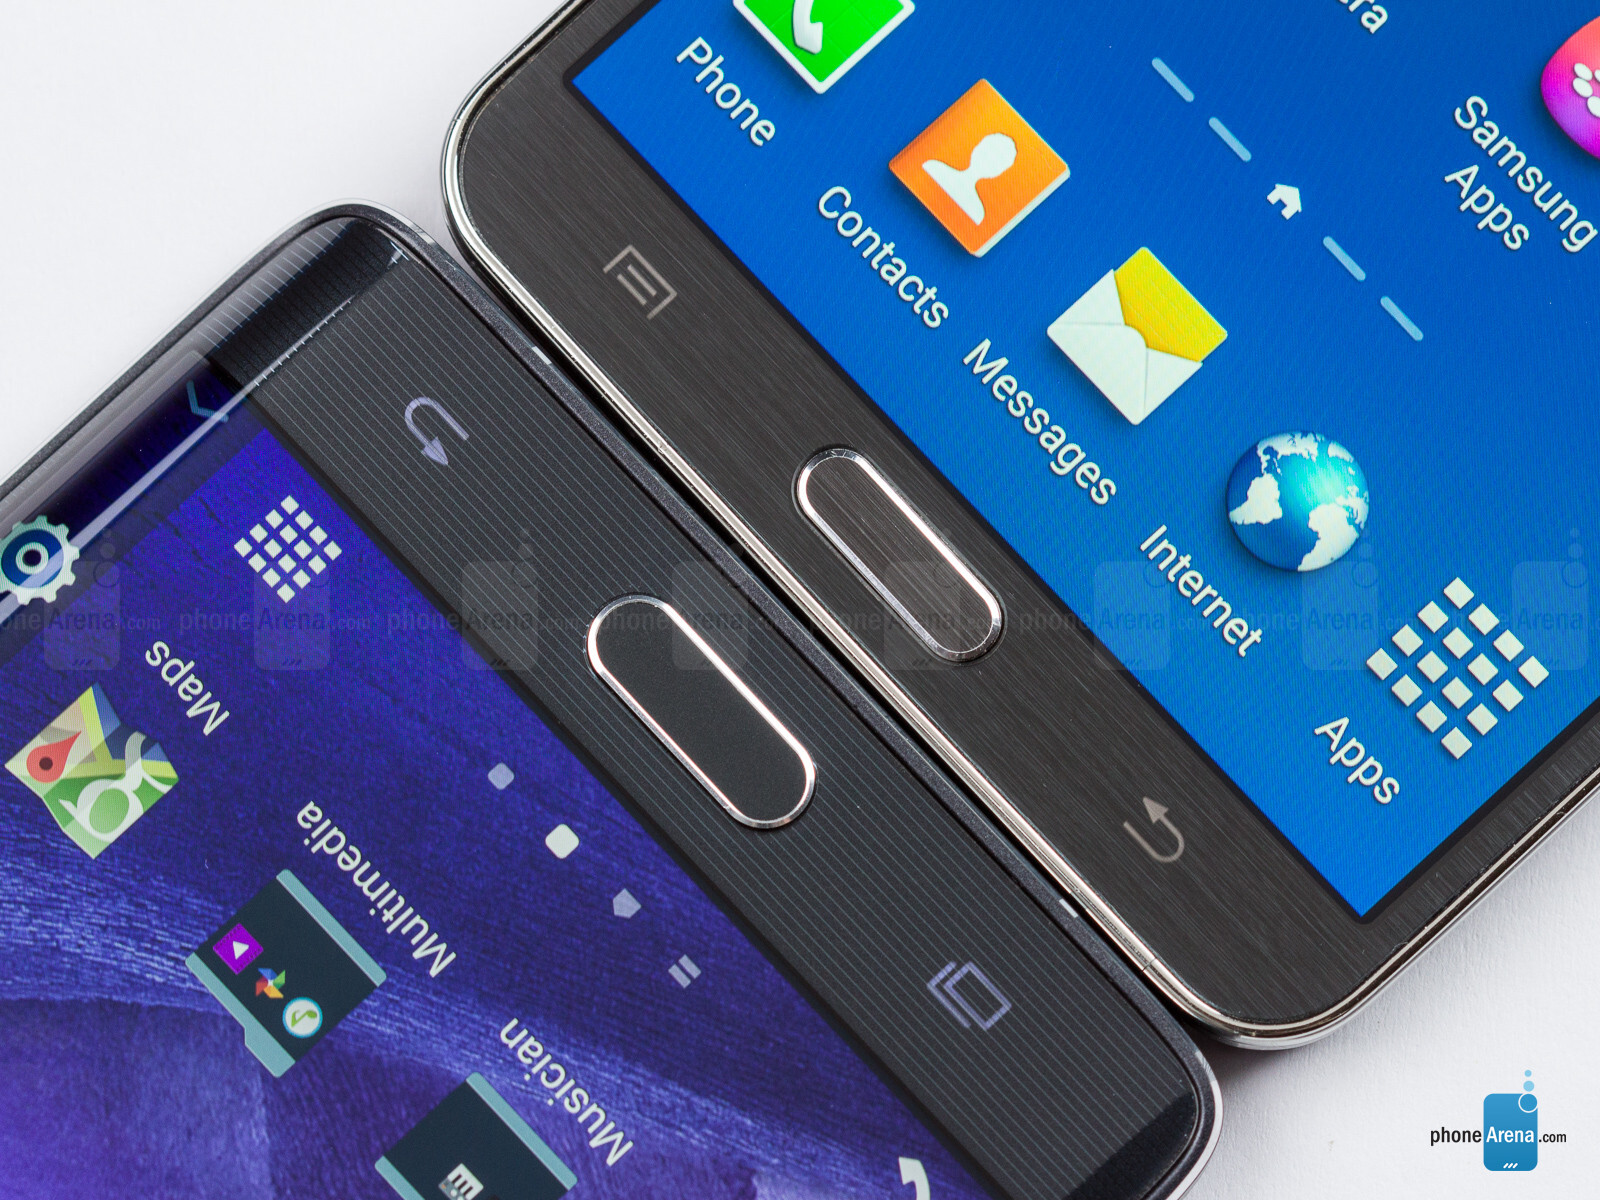 Samsung Galaxy Note Edge vs Samsung Galaxy Note 3